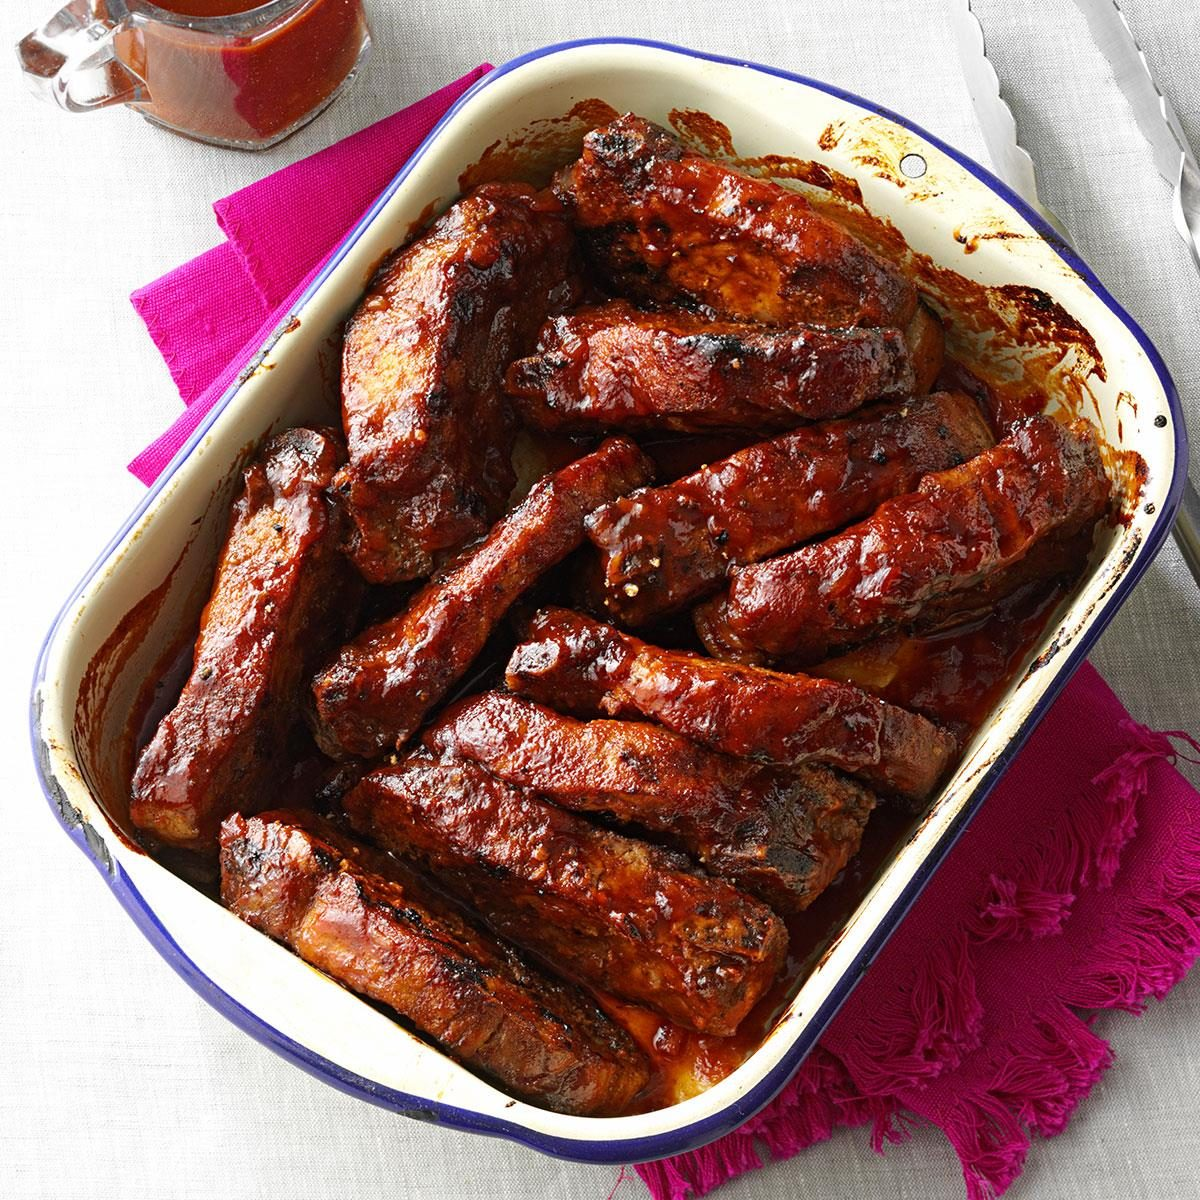 Kansas city style ribs recipe taste of home for Side dishes for bbq ribs and chicken